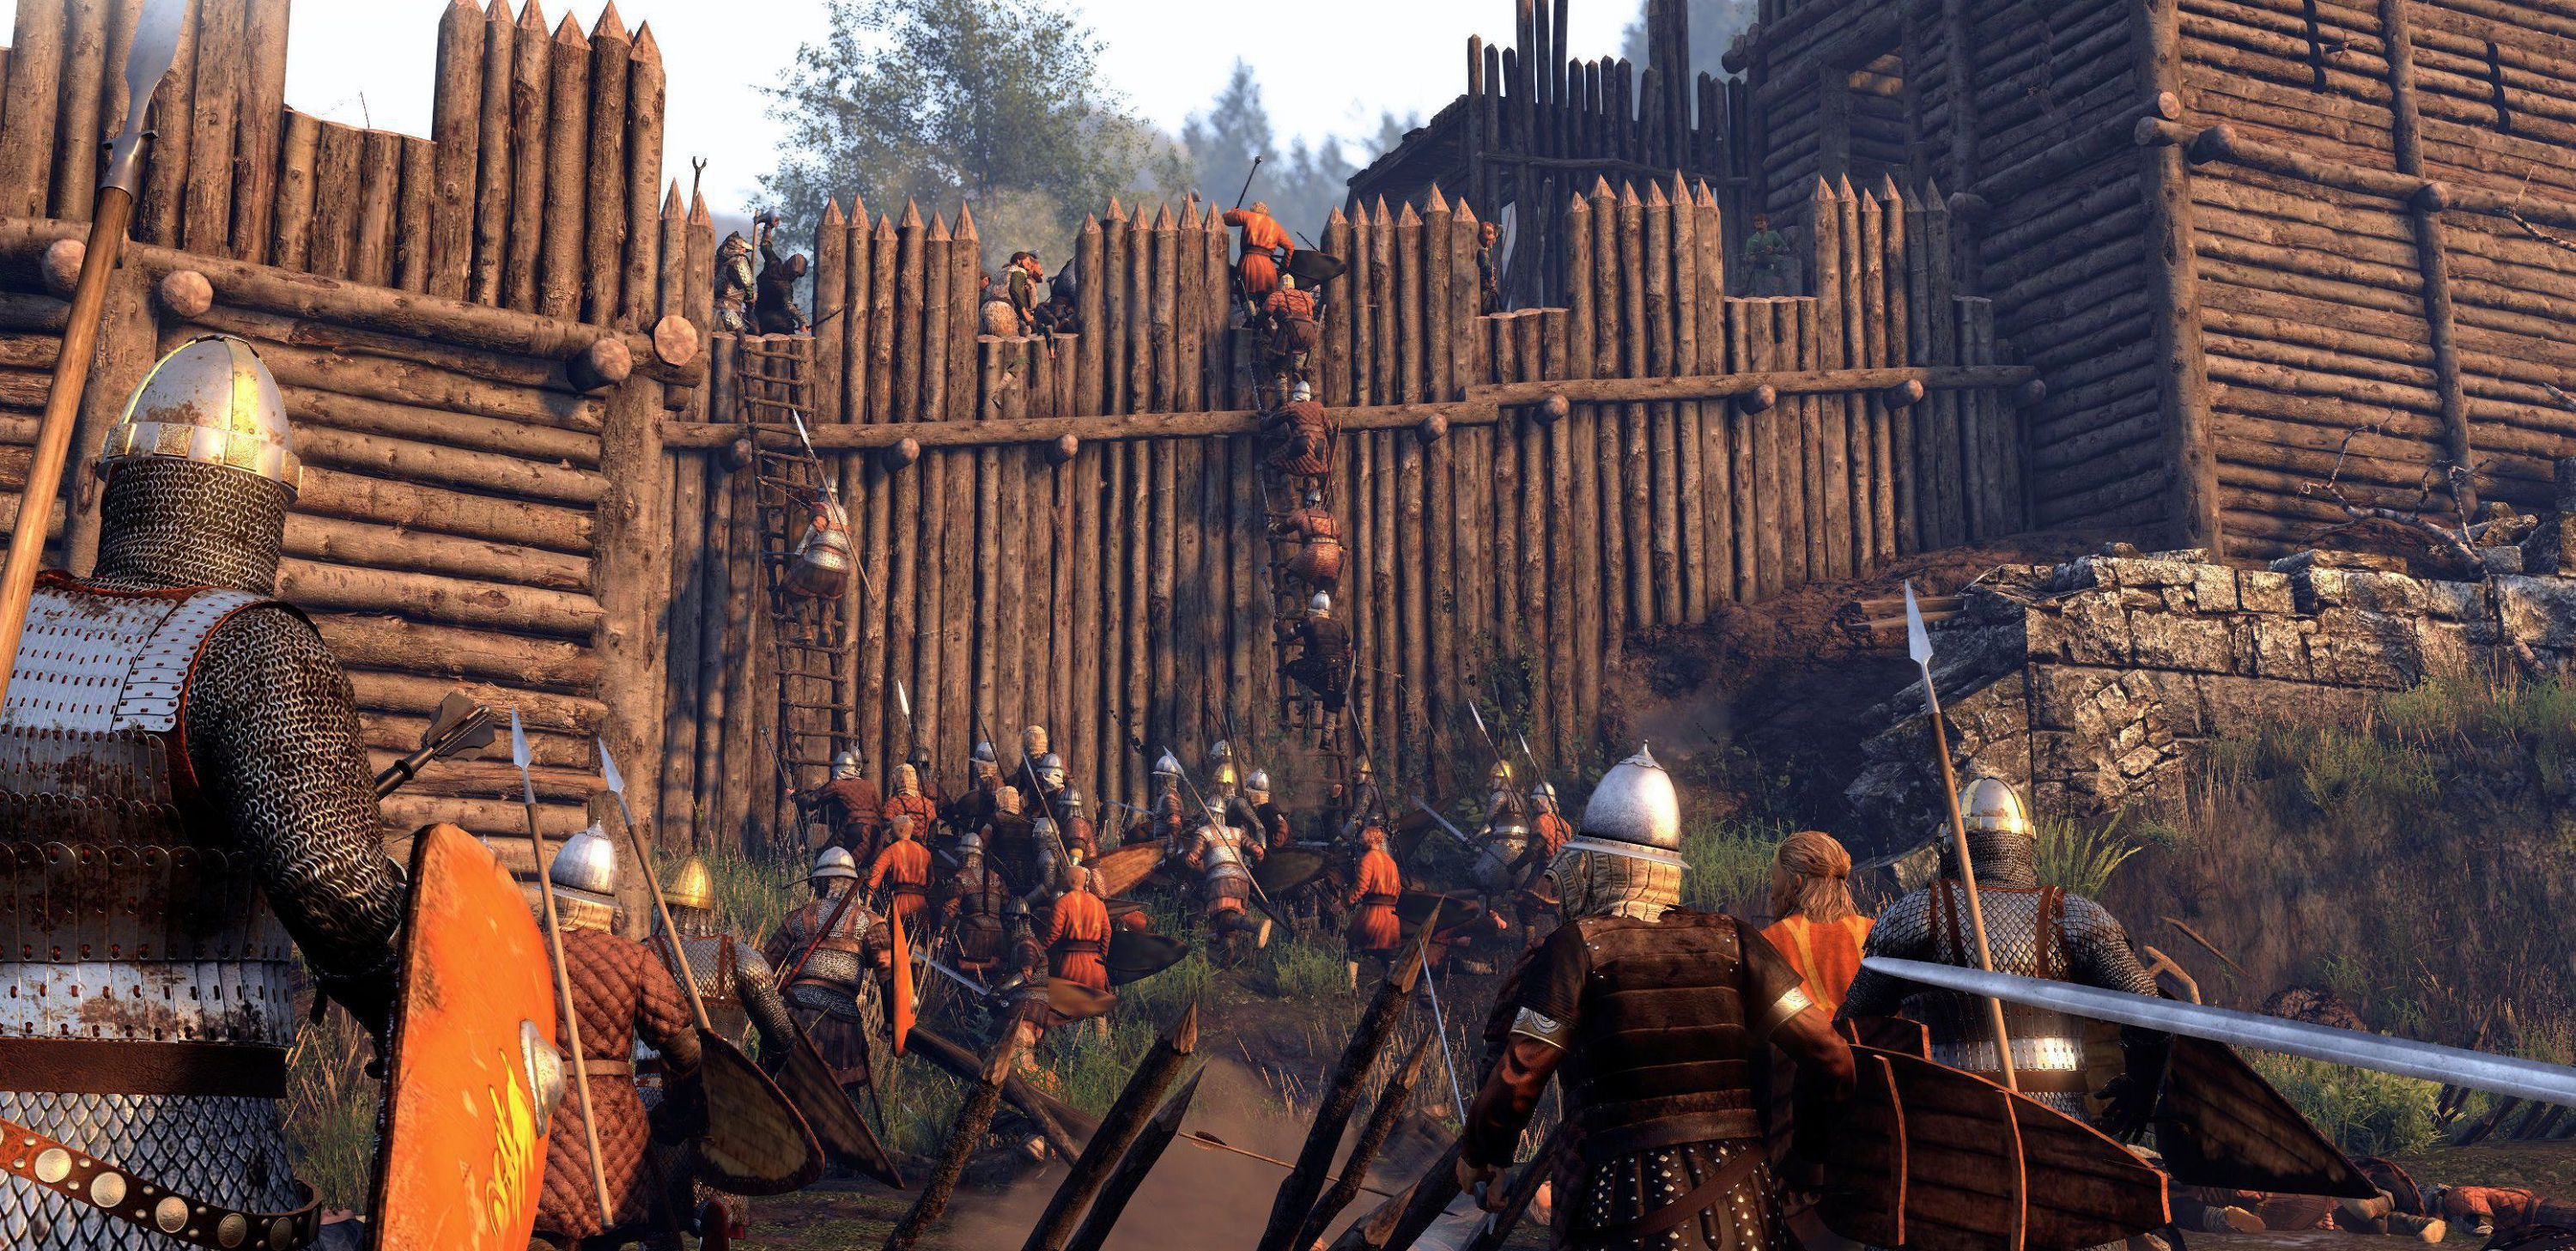 Mount Blade 2 Bannerlord Wallpaper Pack